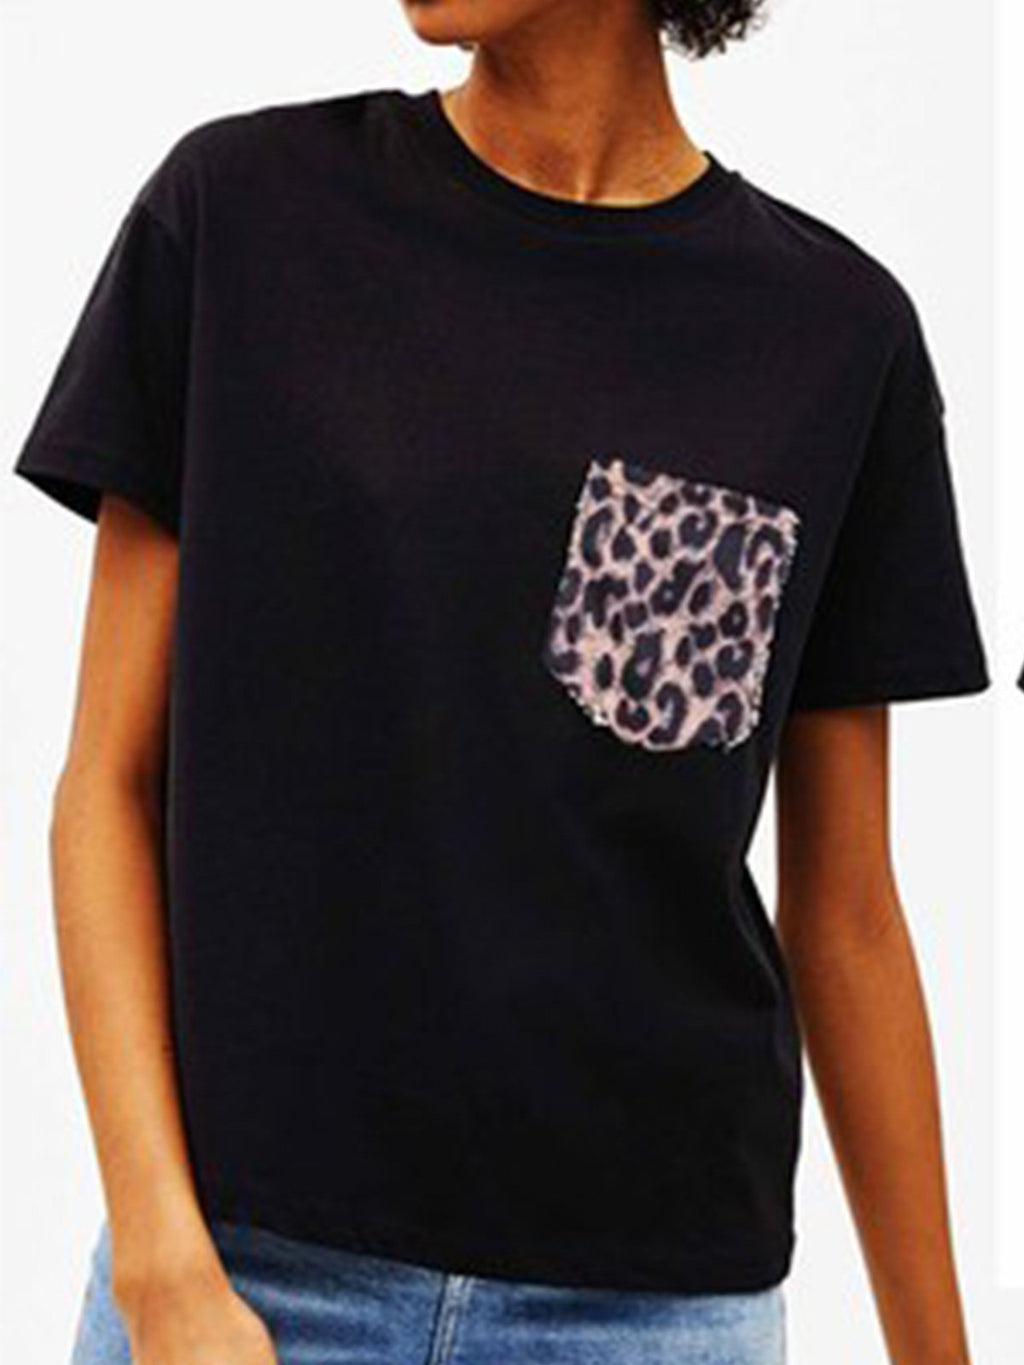 Black Leopard Pocket Round Neck Short Sleeve T-shirt - Popross